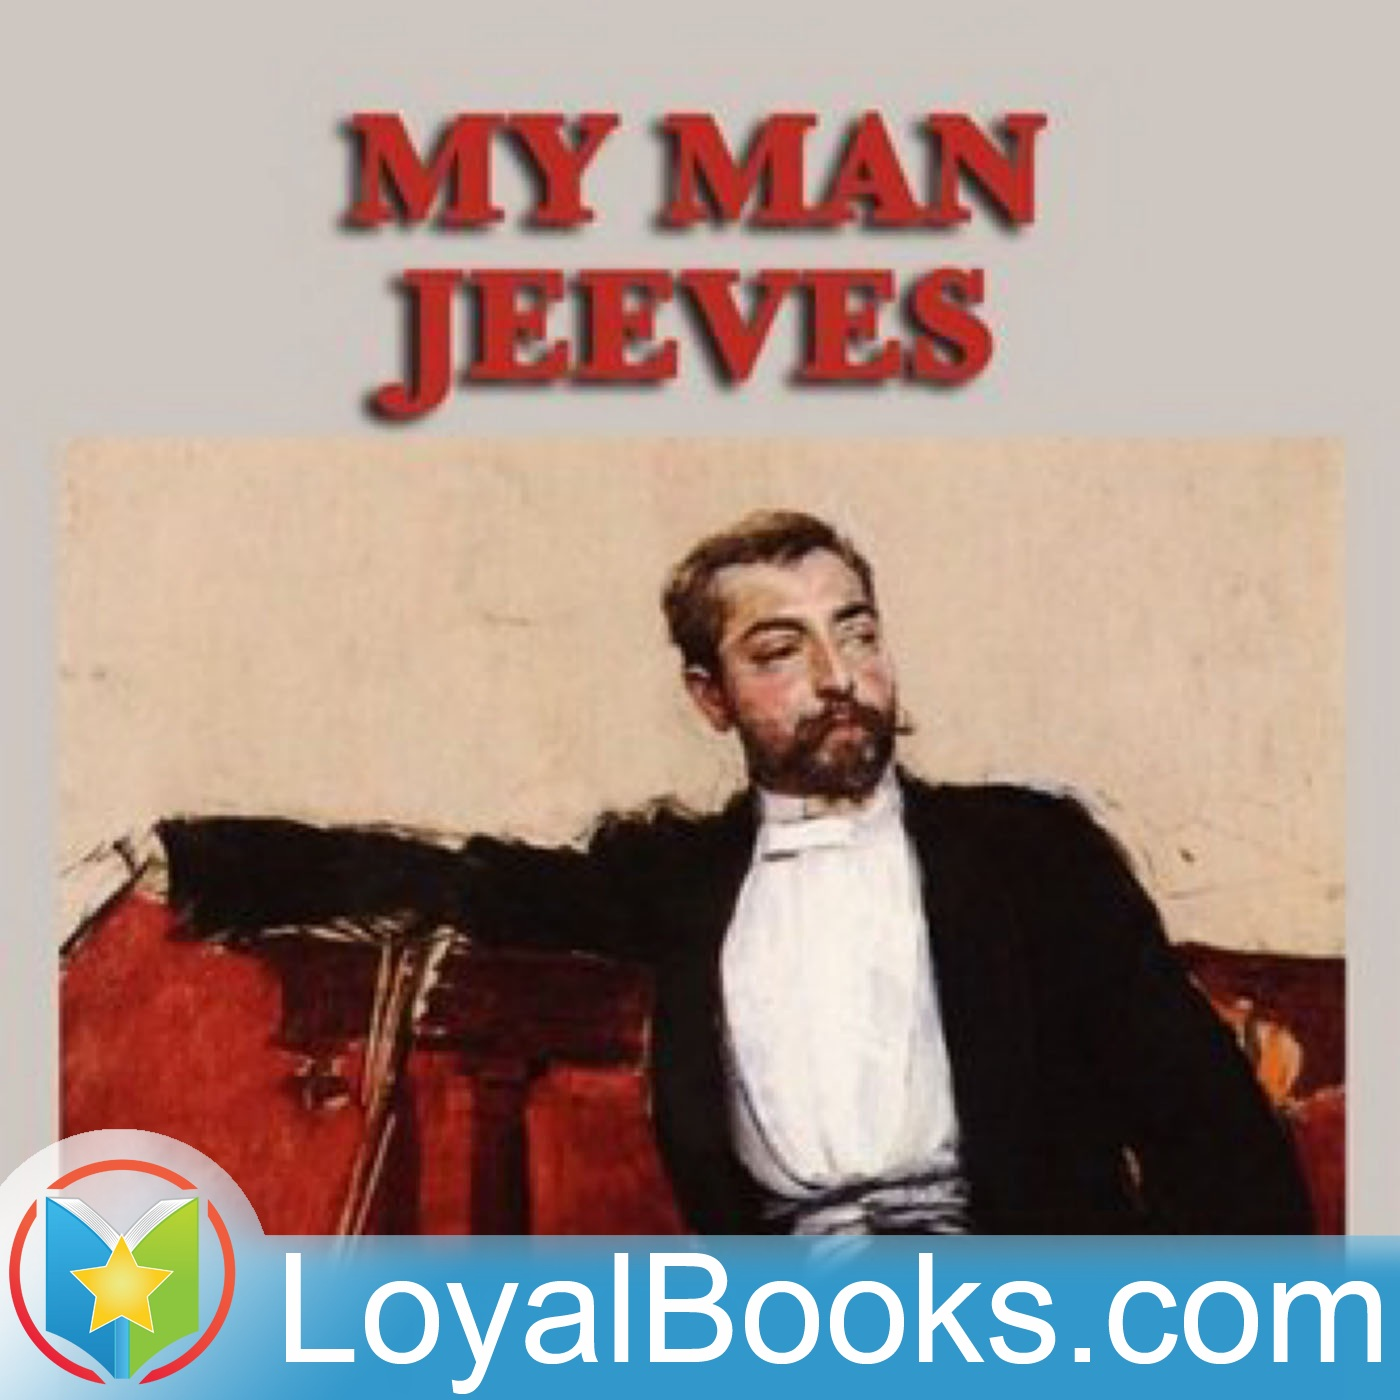 <![CDATA[My Man Jeeves by P. G. Wodehouse]]>